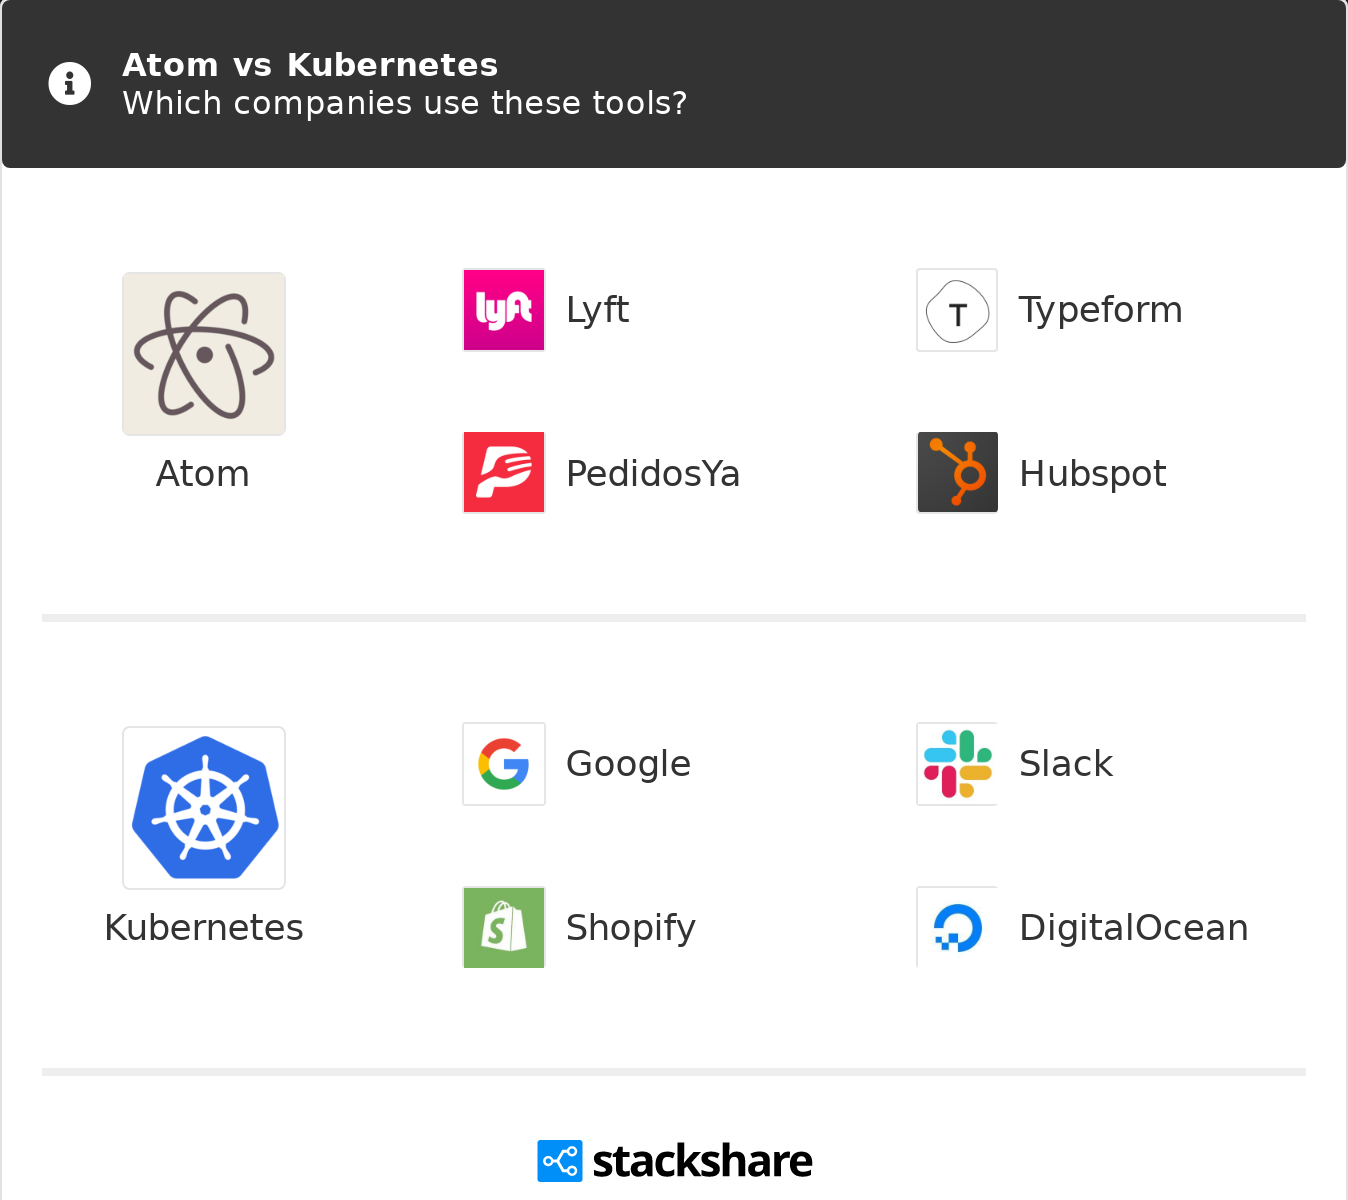 Atom vs Kubernetes | What are the differences?